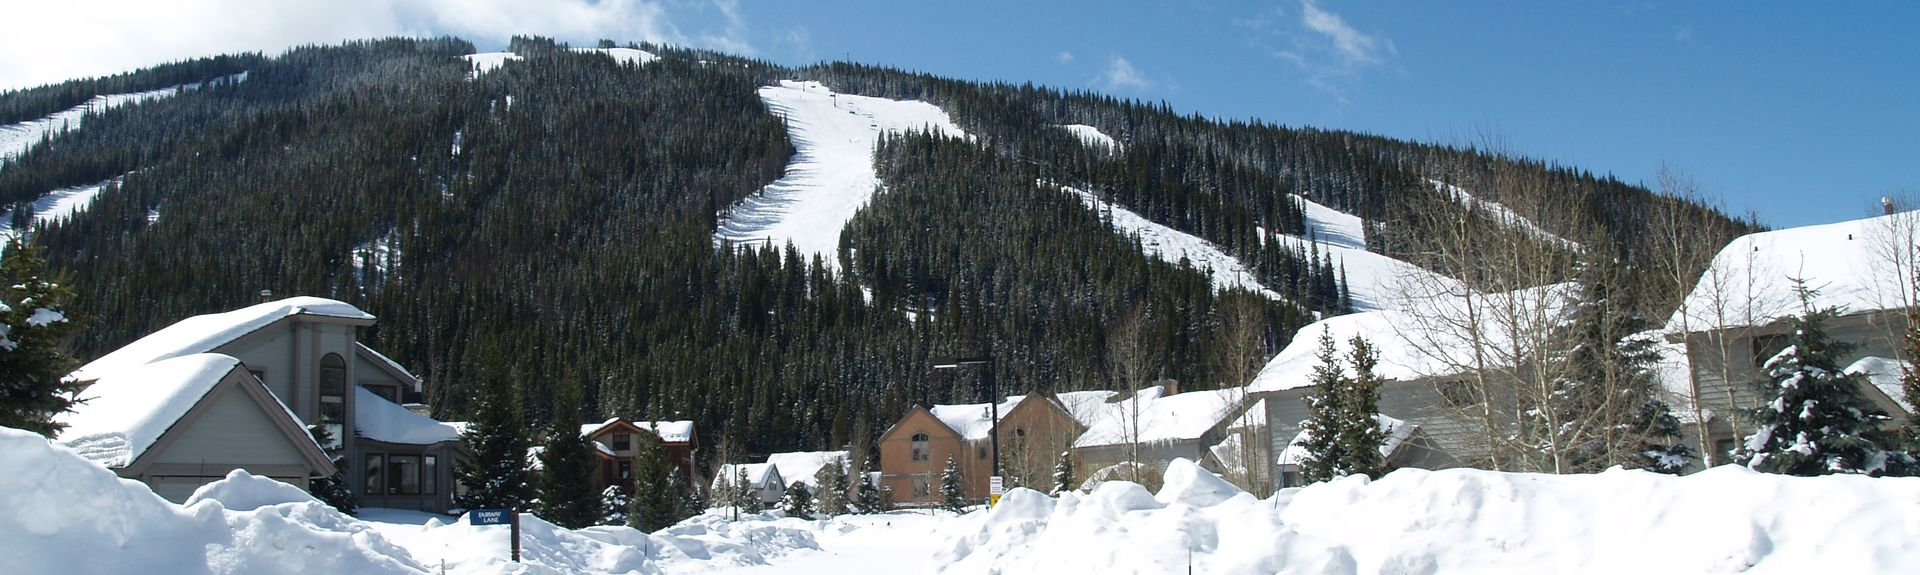 East Village at Copper, Copper Mountain, Colorado, United States of America